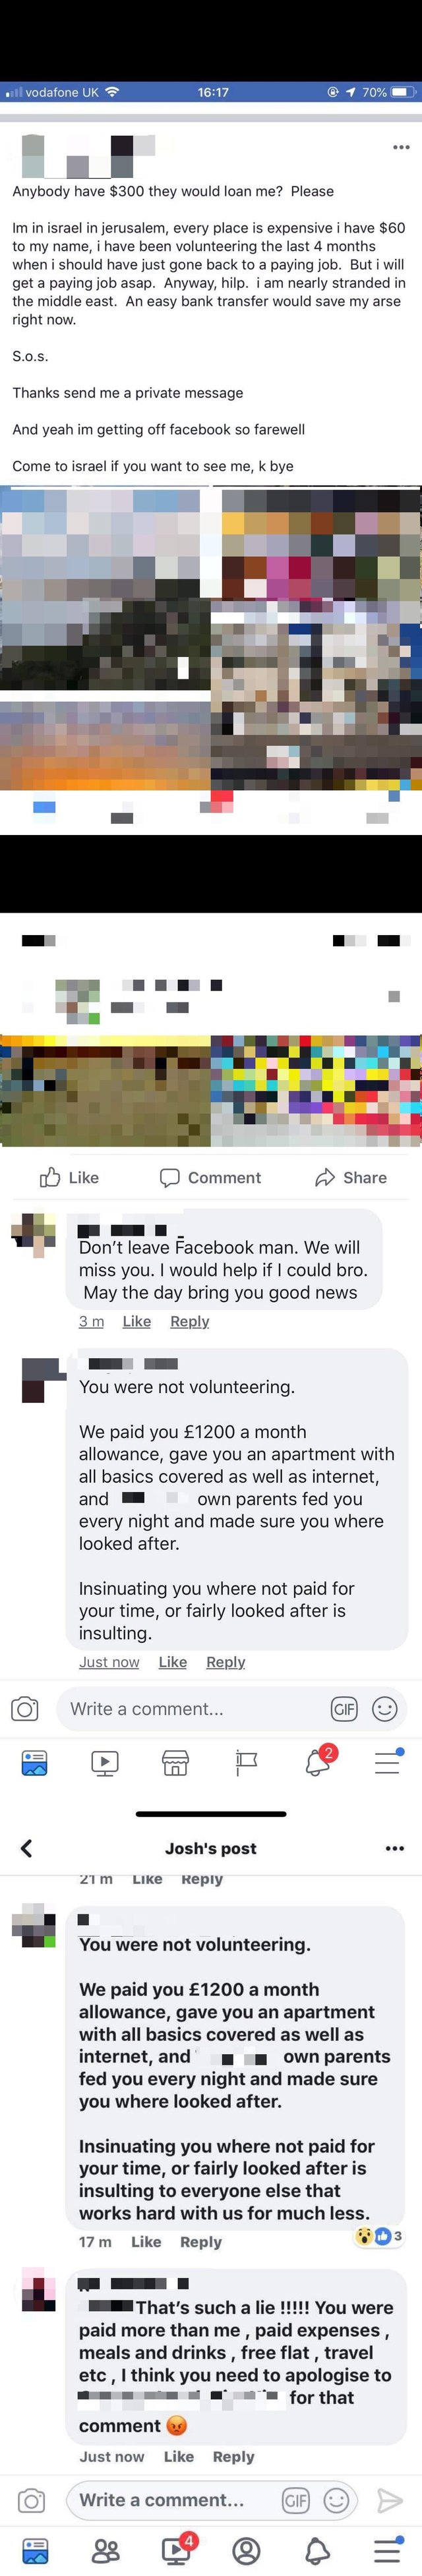 Guy 'volunteering' abroad begs for money on Facebook until an ex-employer calls him out.